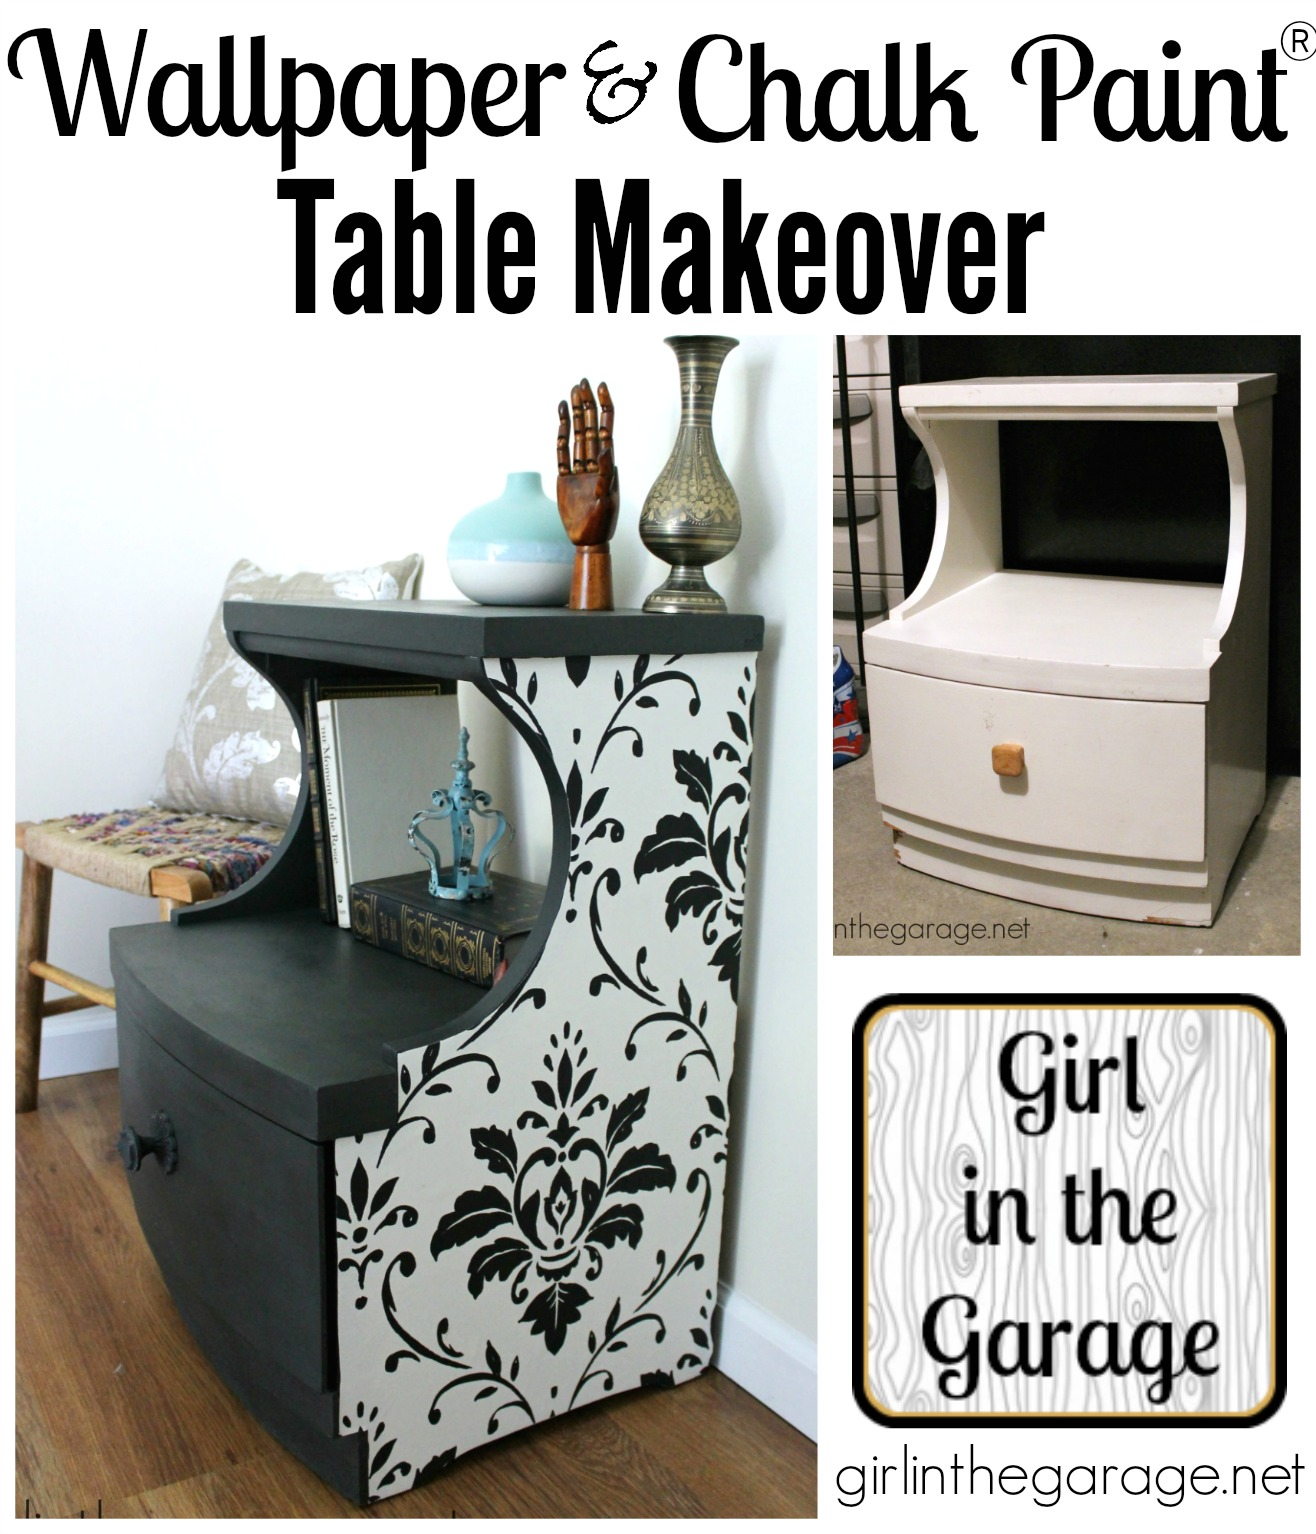 Wallpaper And Chalk Paint Table Makeover